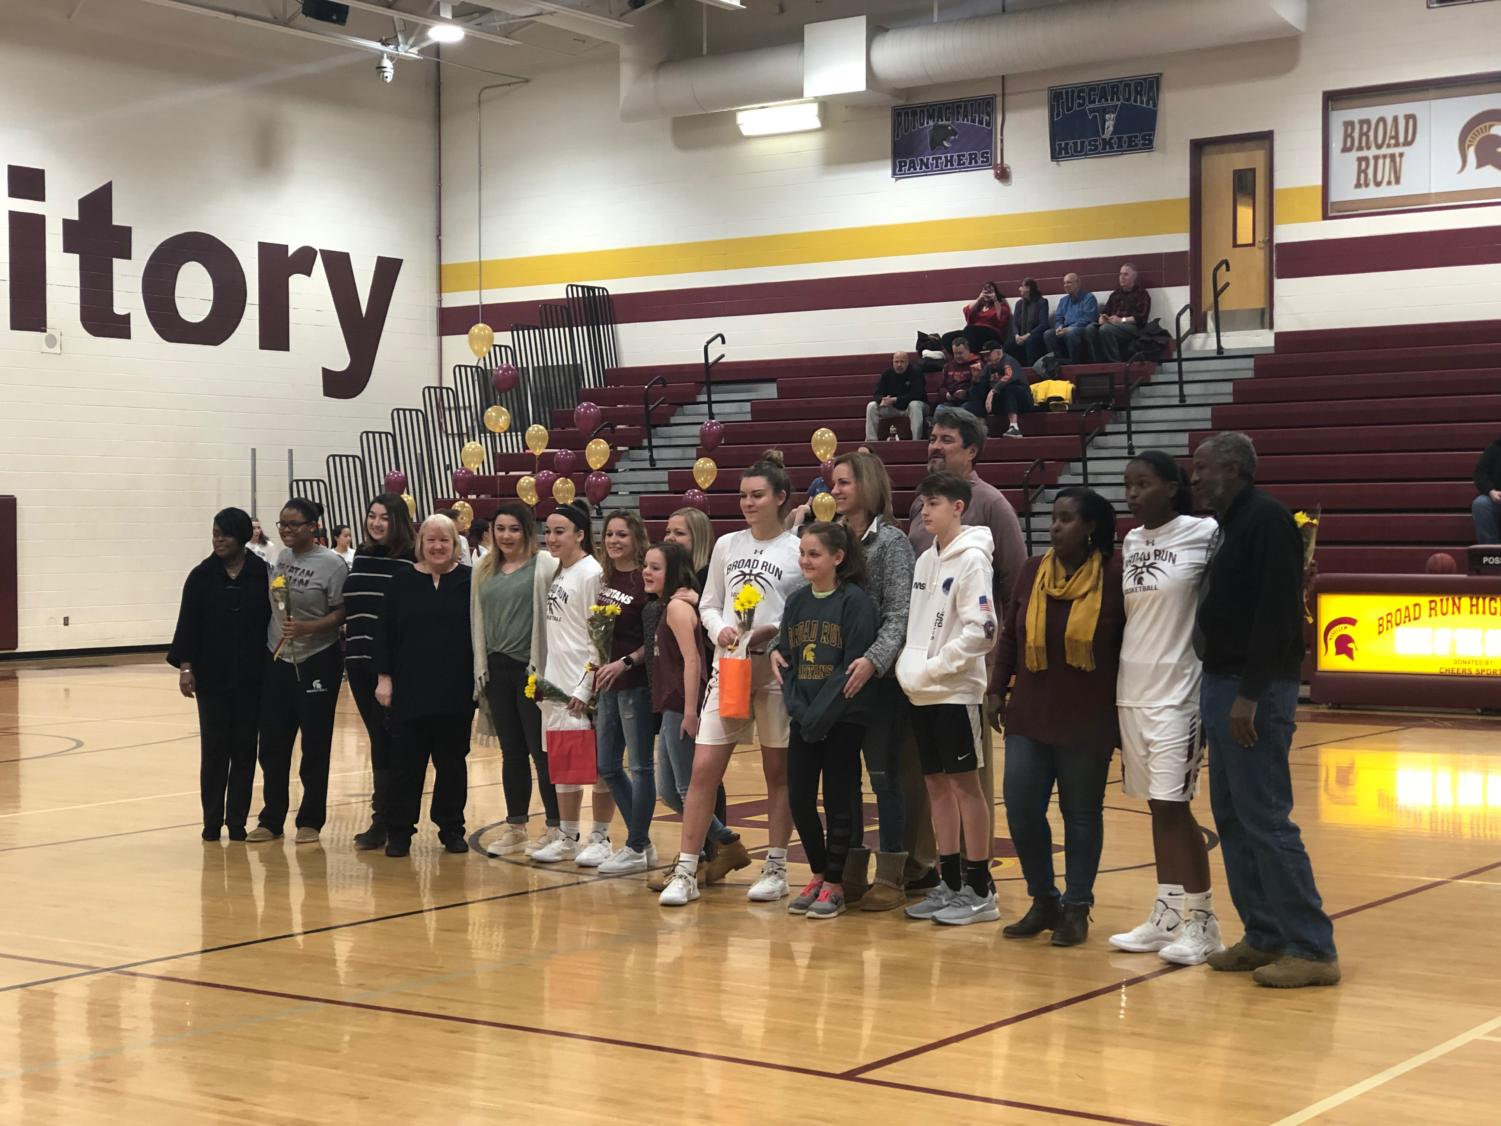 Families and students gather on the court for Senior NIght.